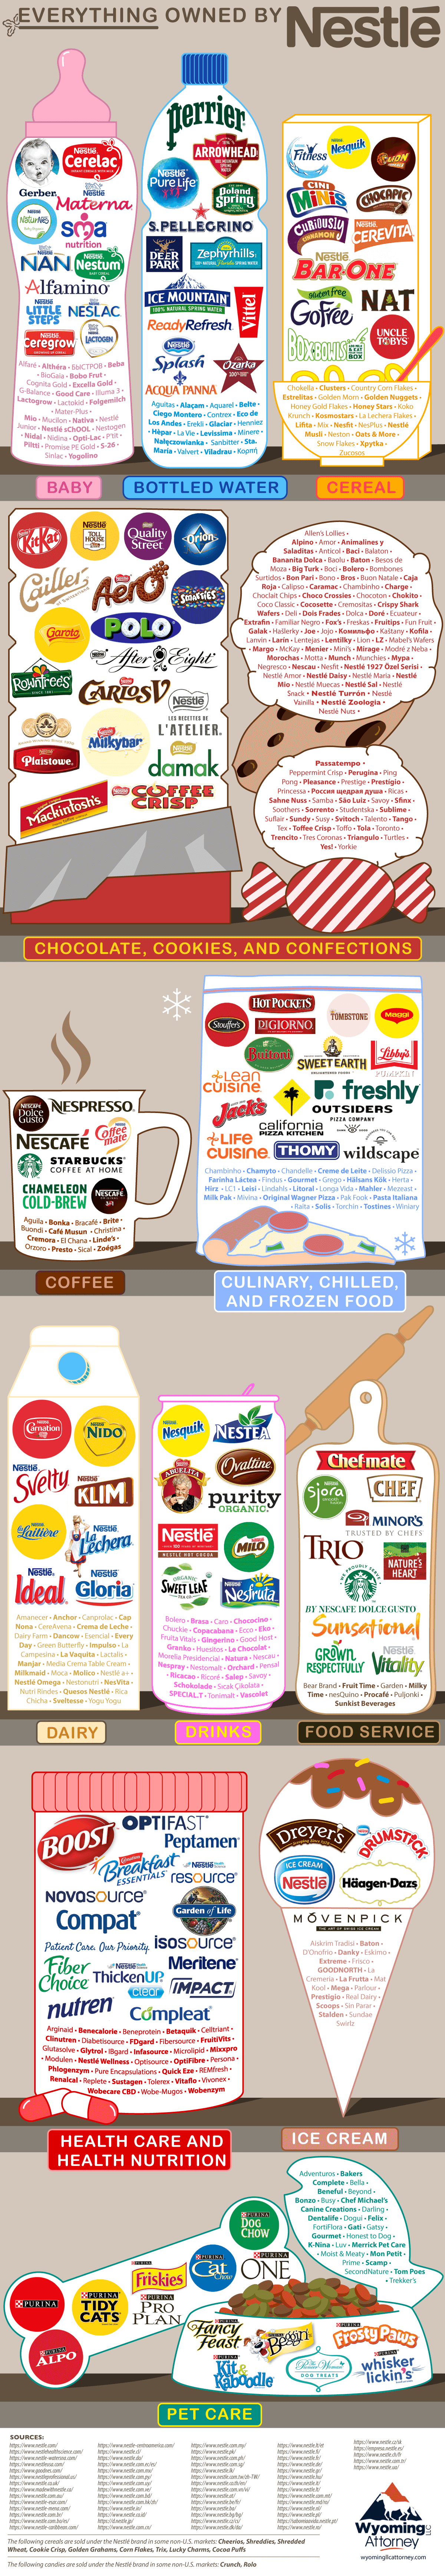 Everything Owned by Nestlé